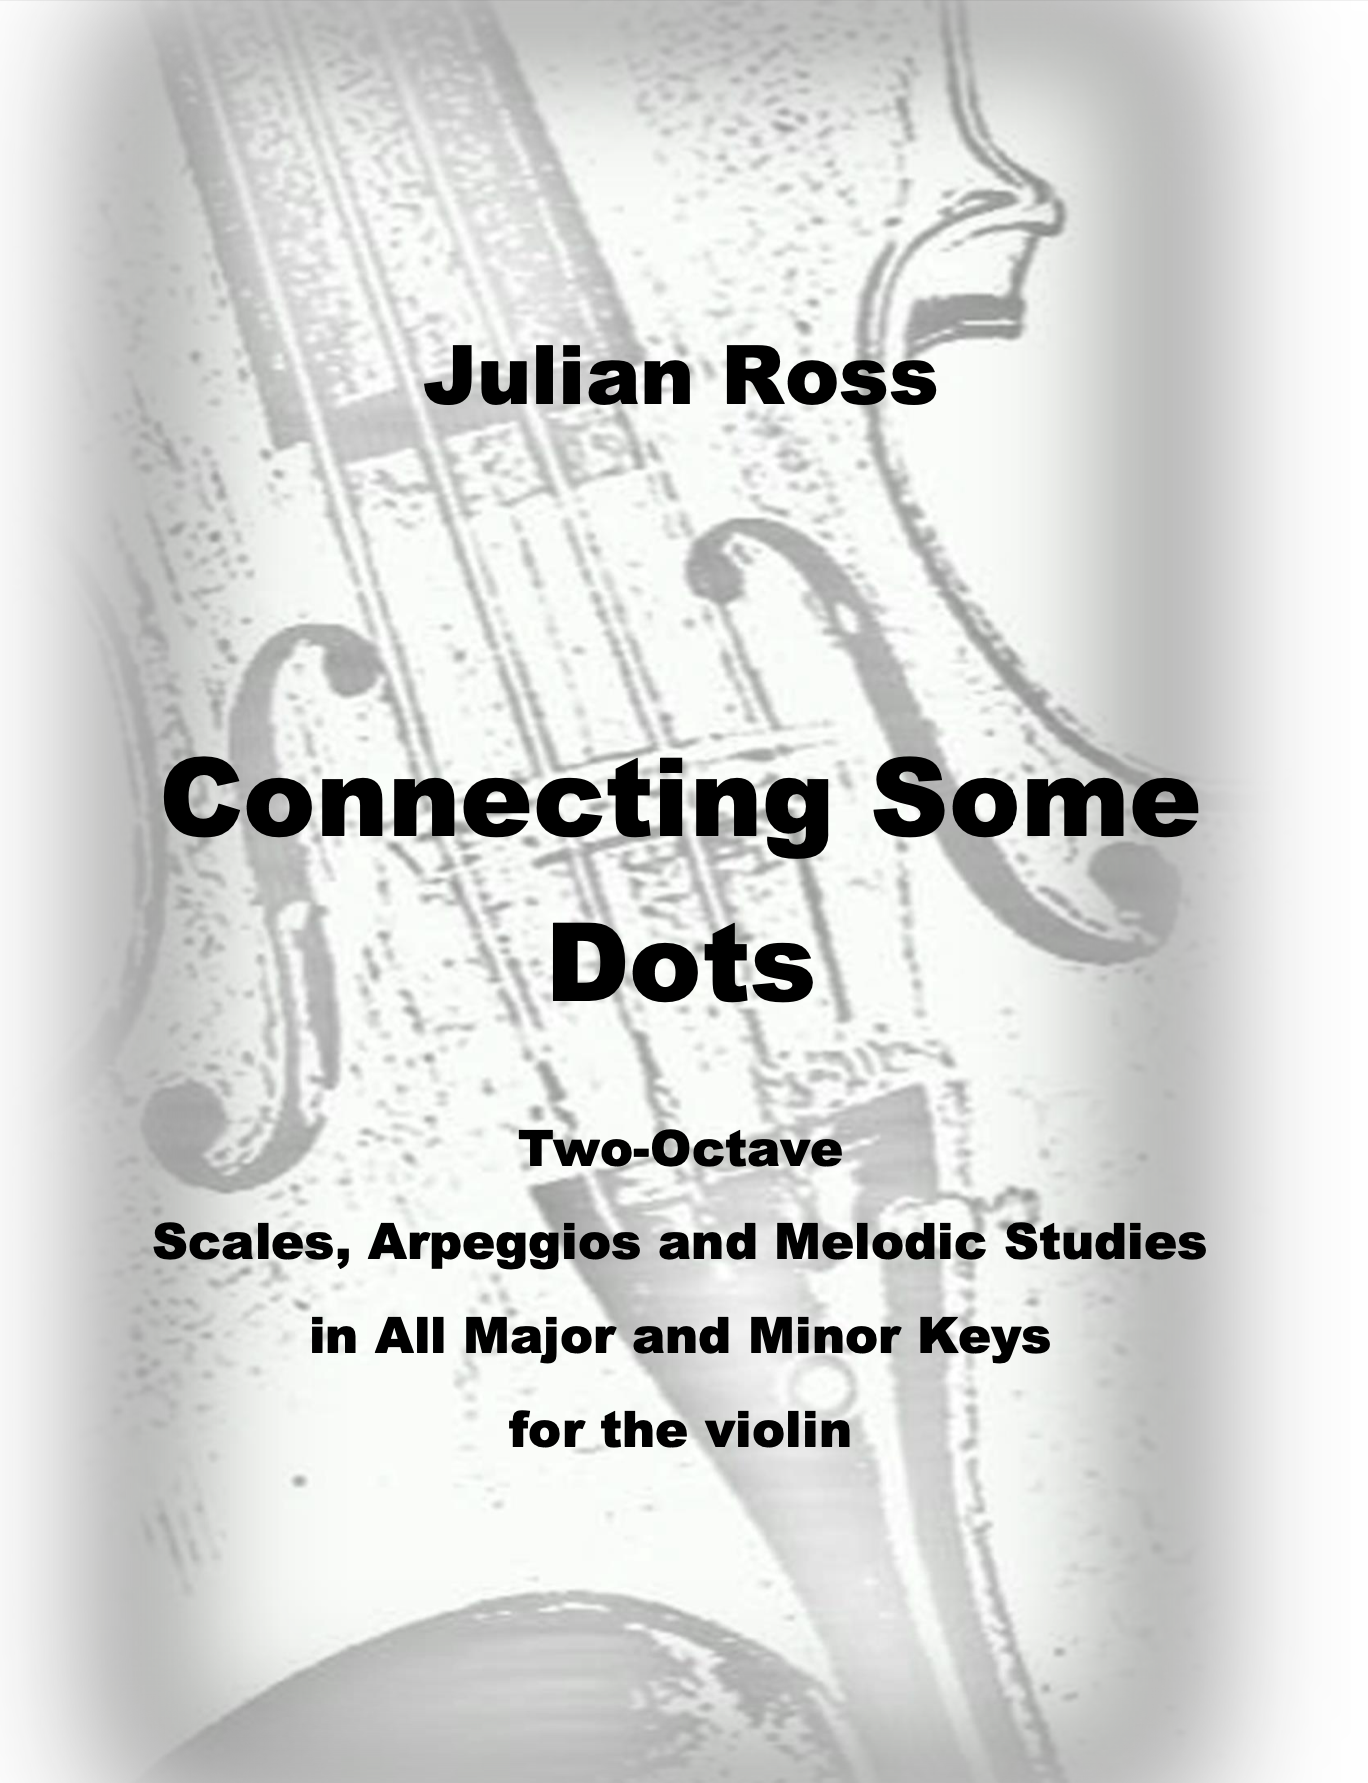 Connecting Some Dots by Julian Ross